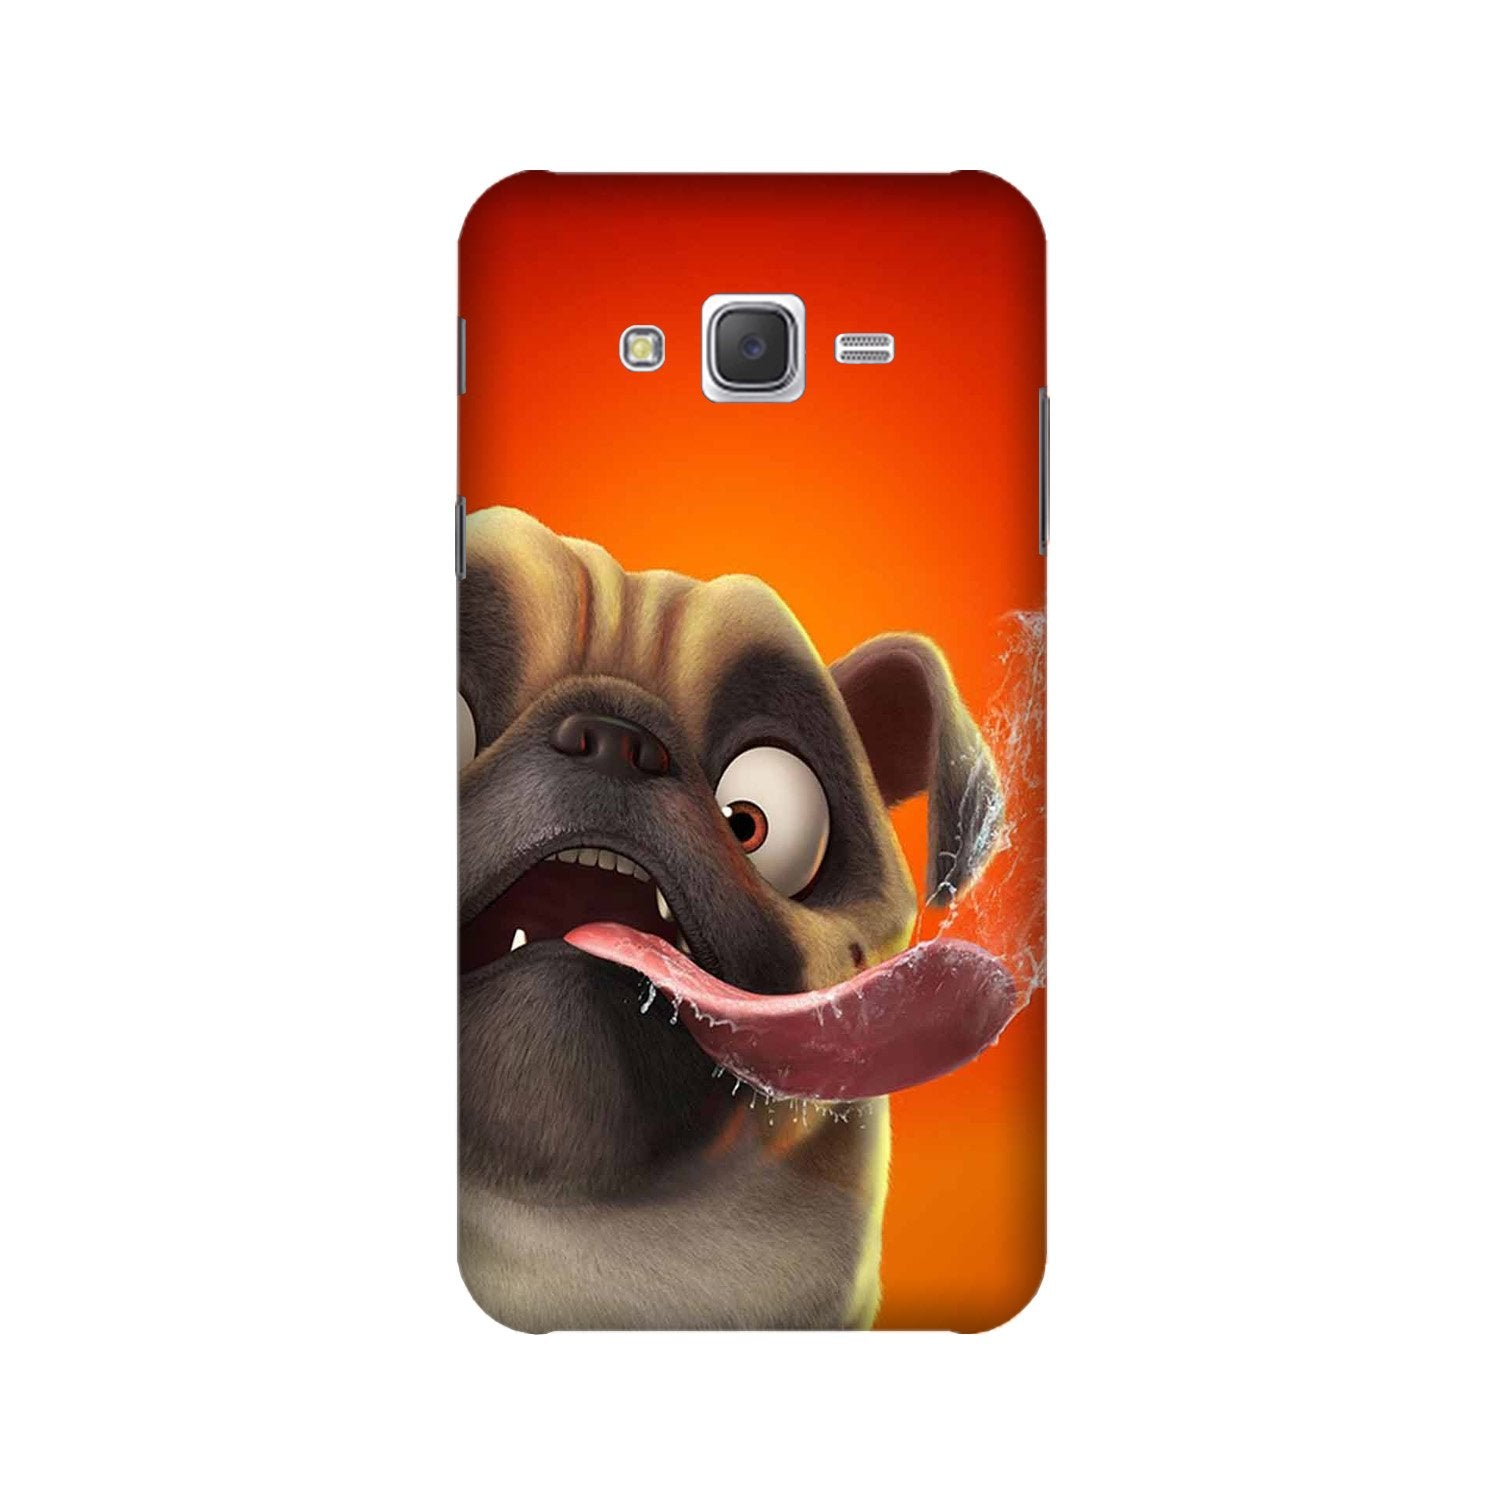 Dog Mobile Back Case for Galaxy A3 (2015) (Design - 343)